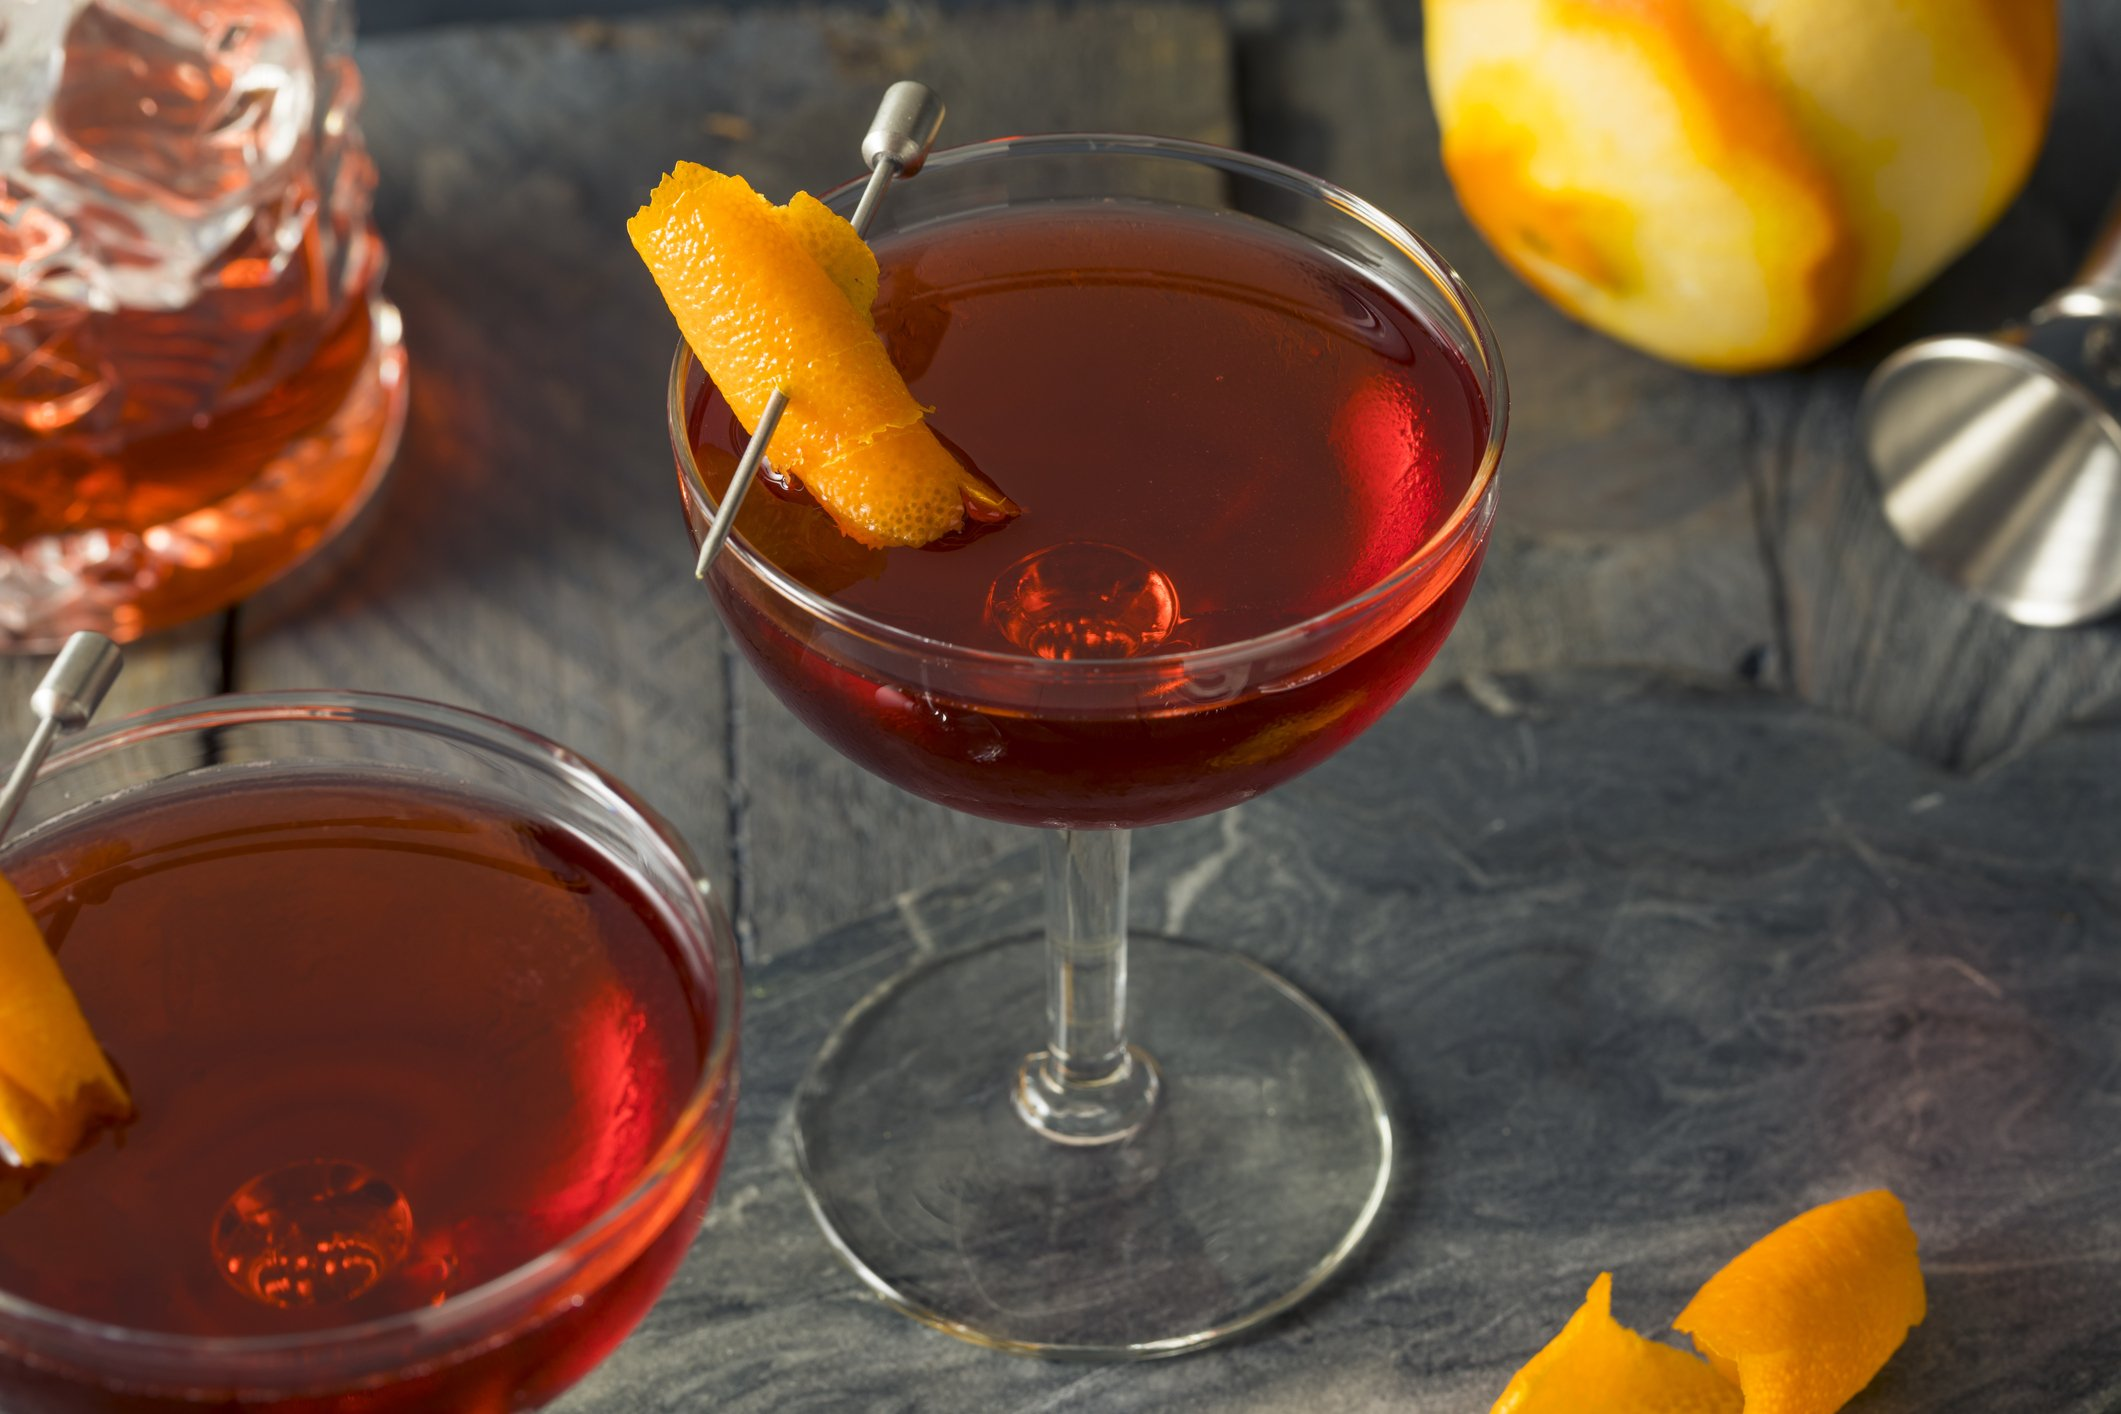 Homemade Red Boulevardier Cocktail with Orange Garnish